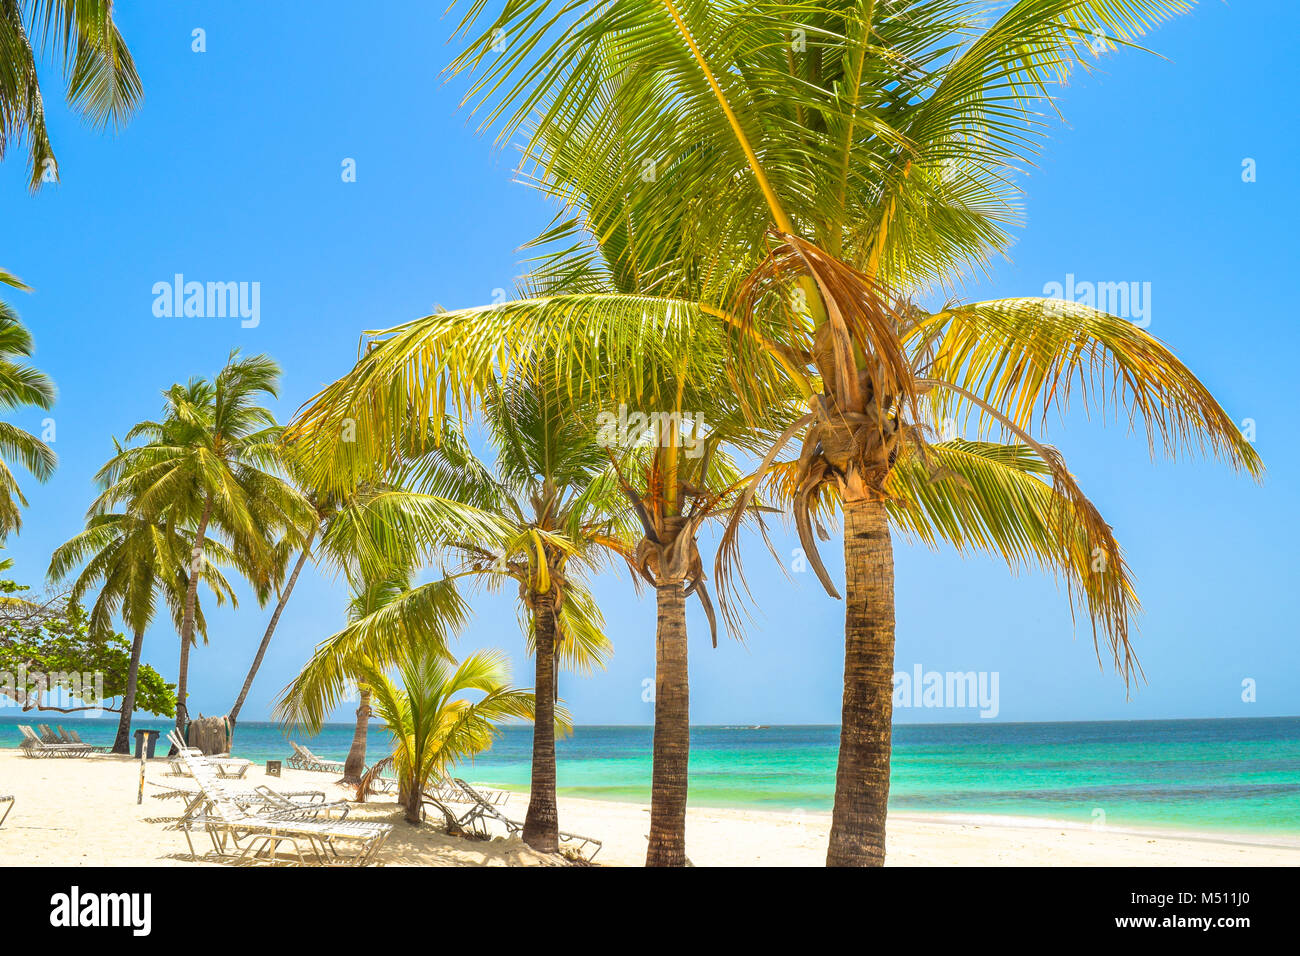 Beautiful beach with palms, sunbeds, blue sky and turquoise water, Dominican Republic, Samana, little Island in - Stock Image